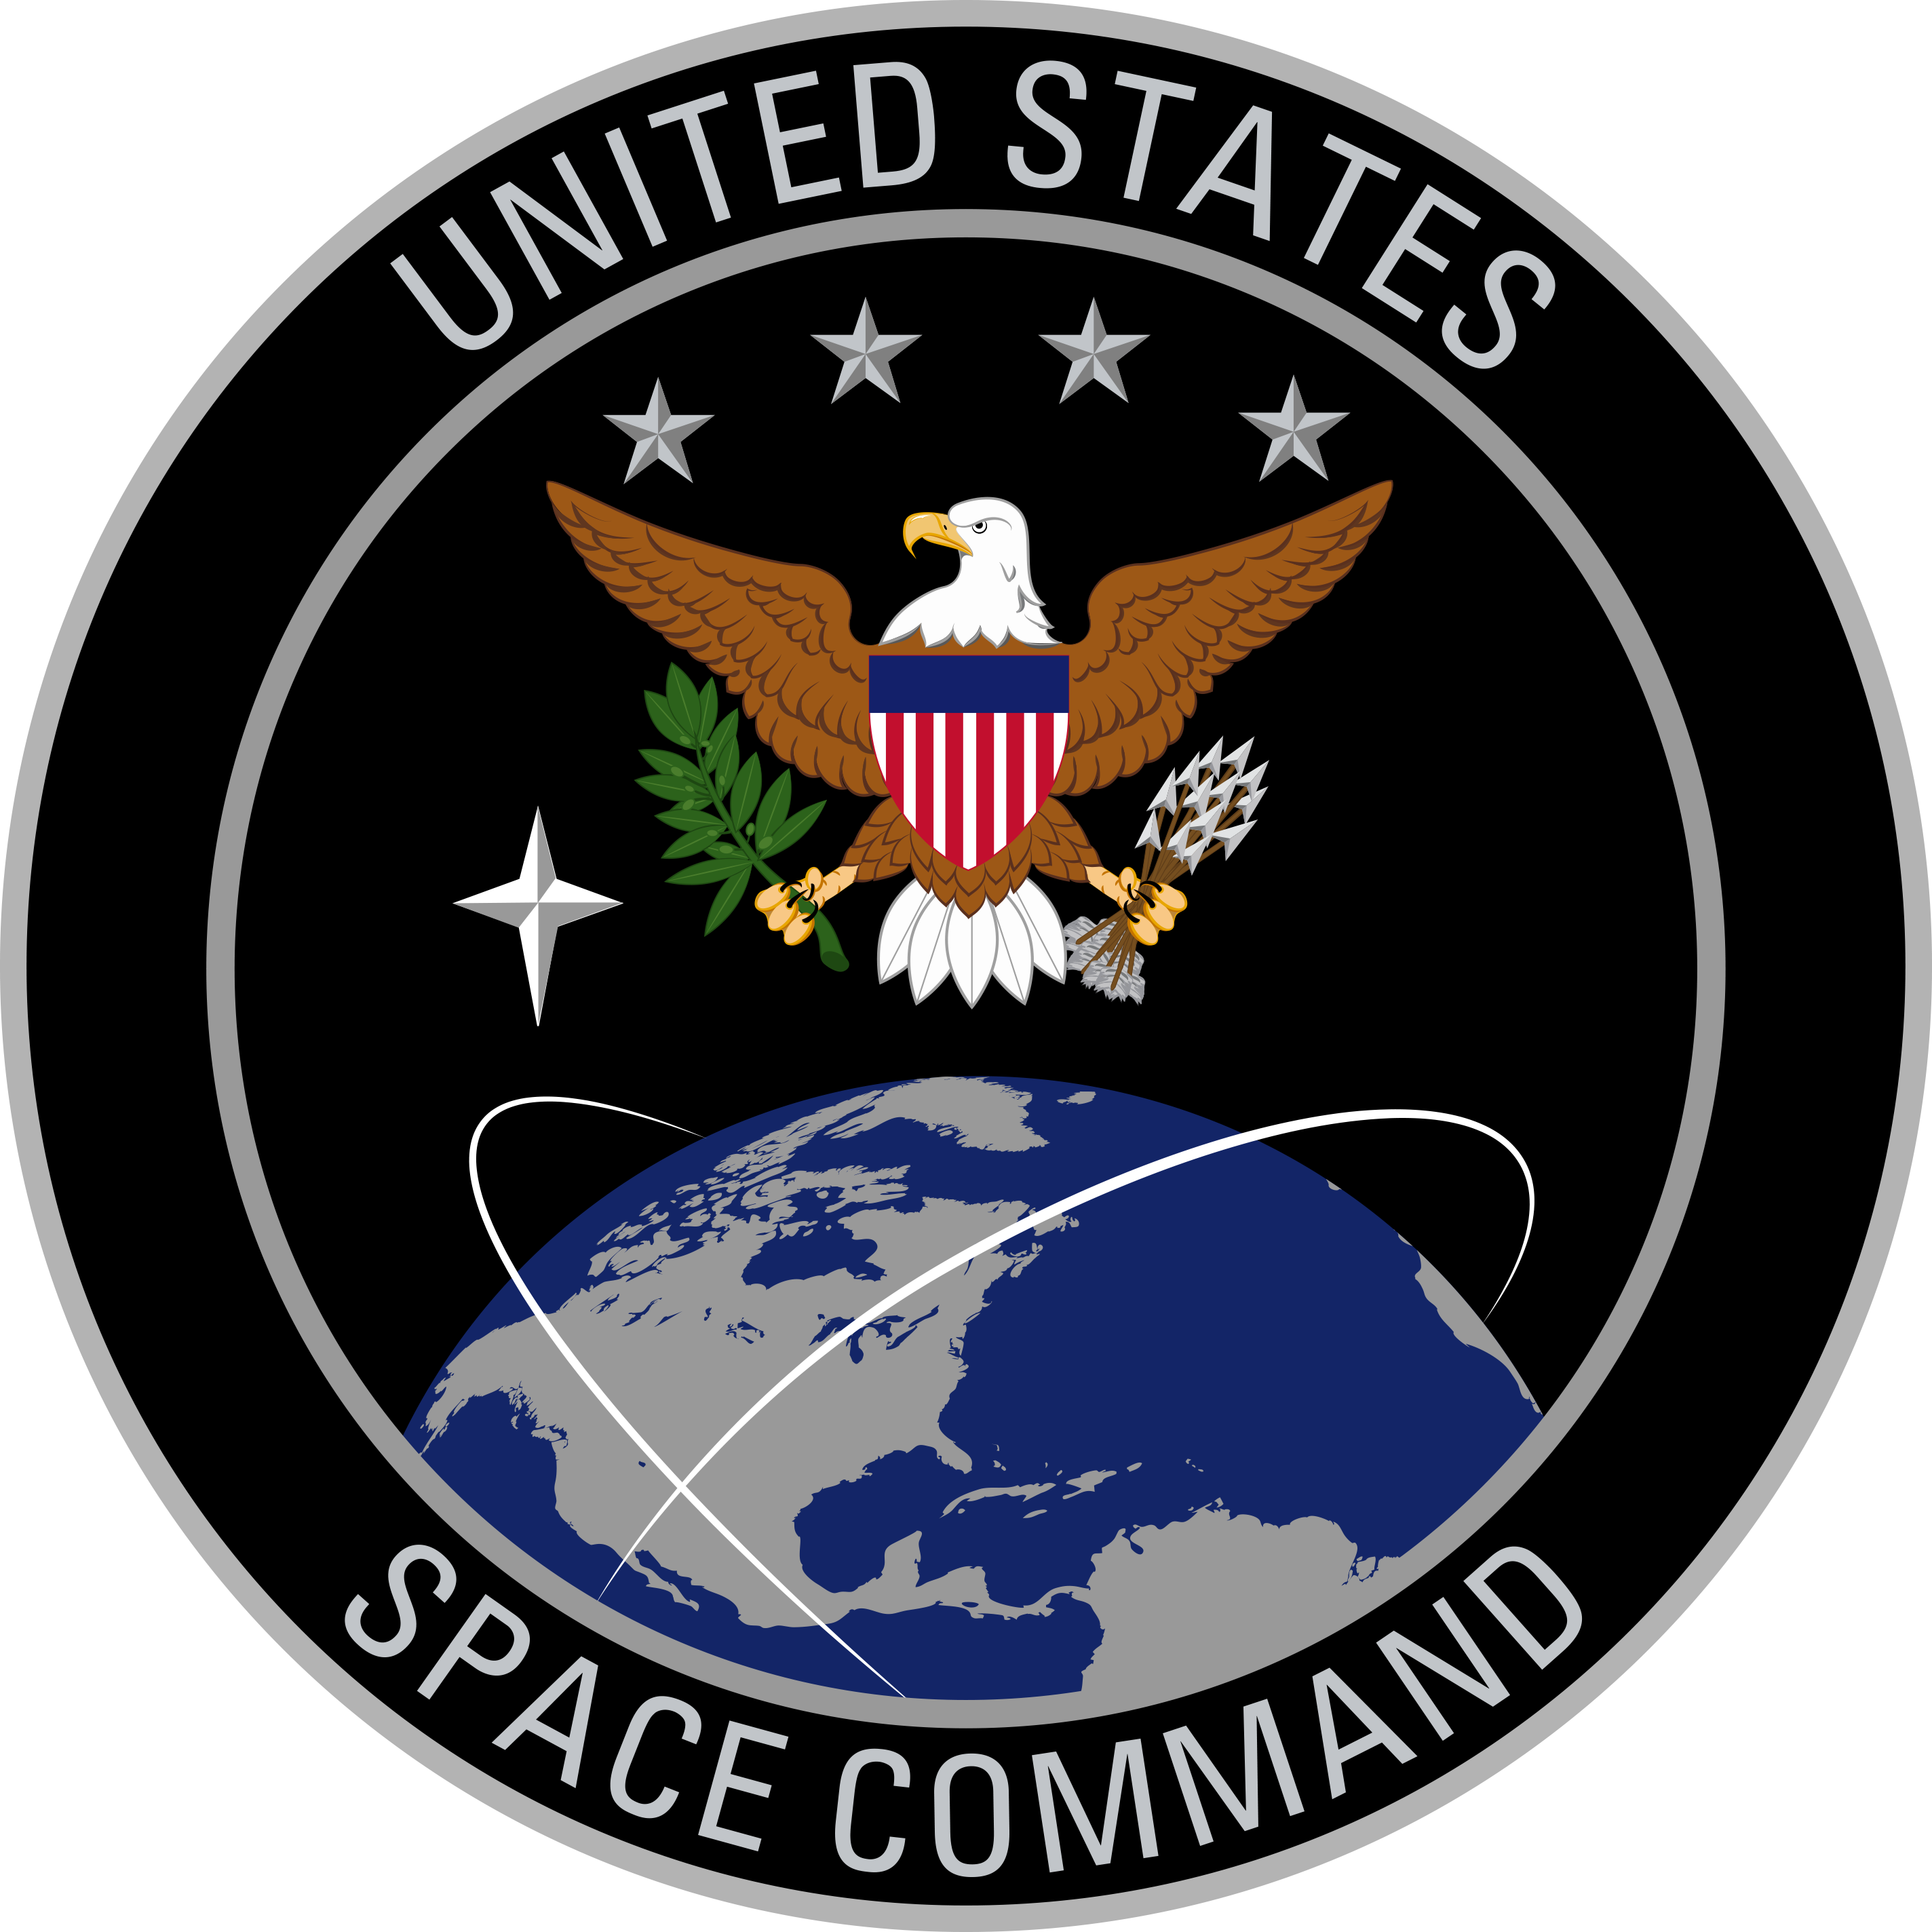 United States Space Command Wikipedia